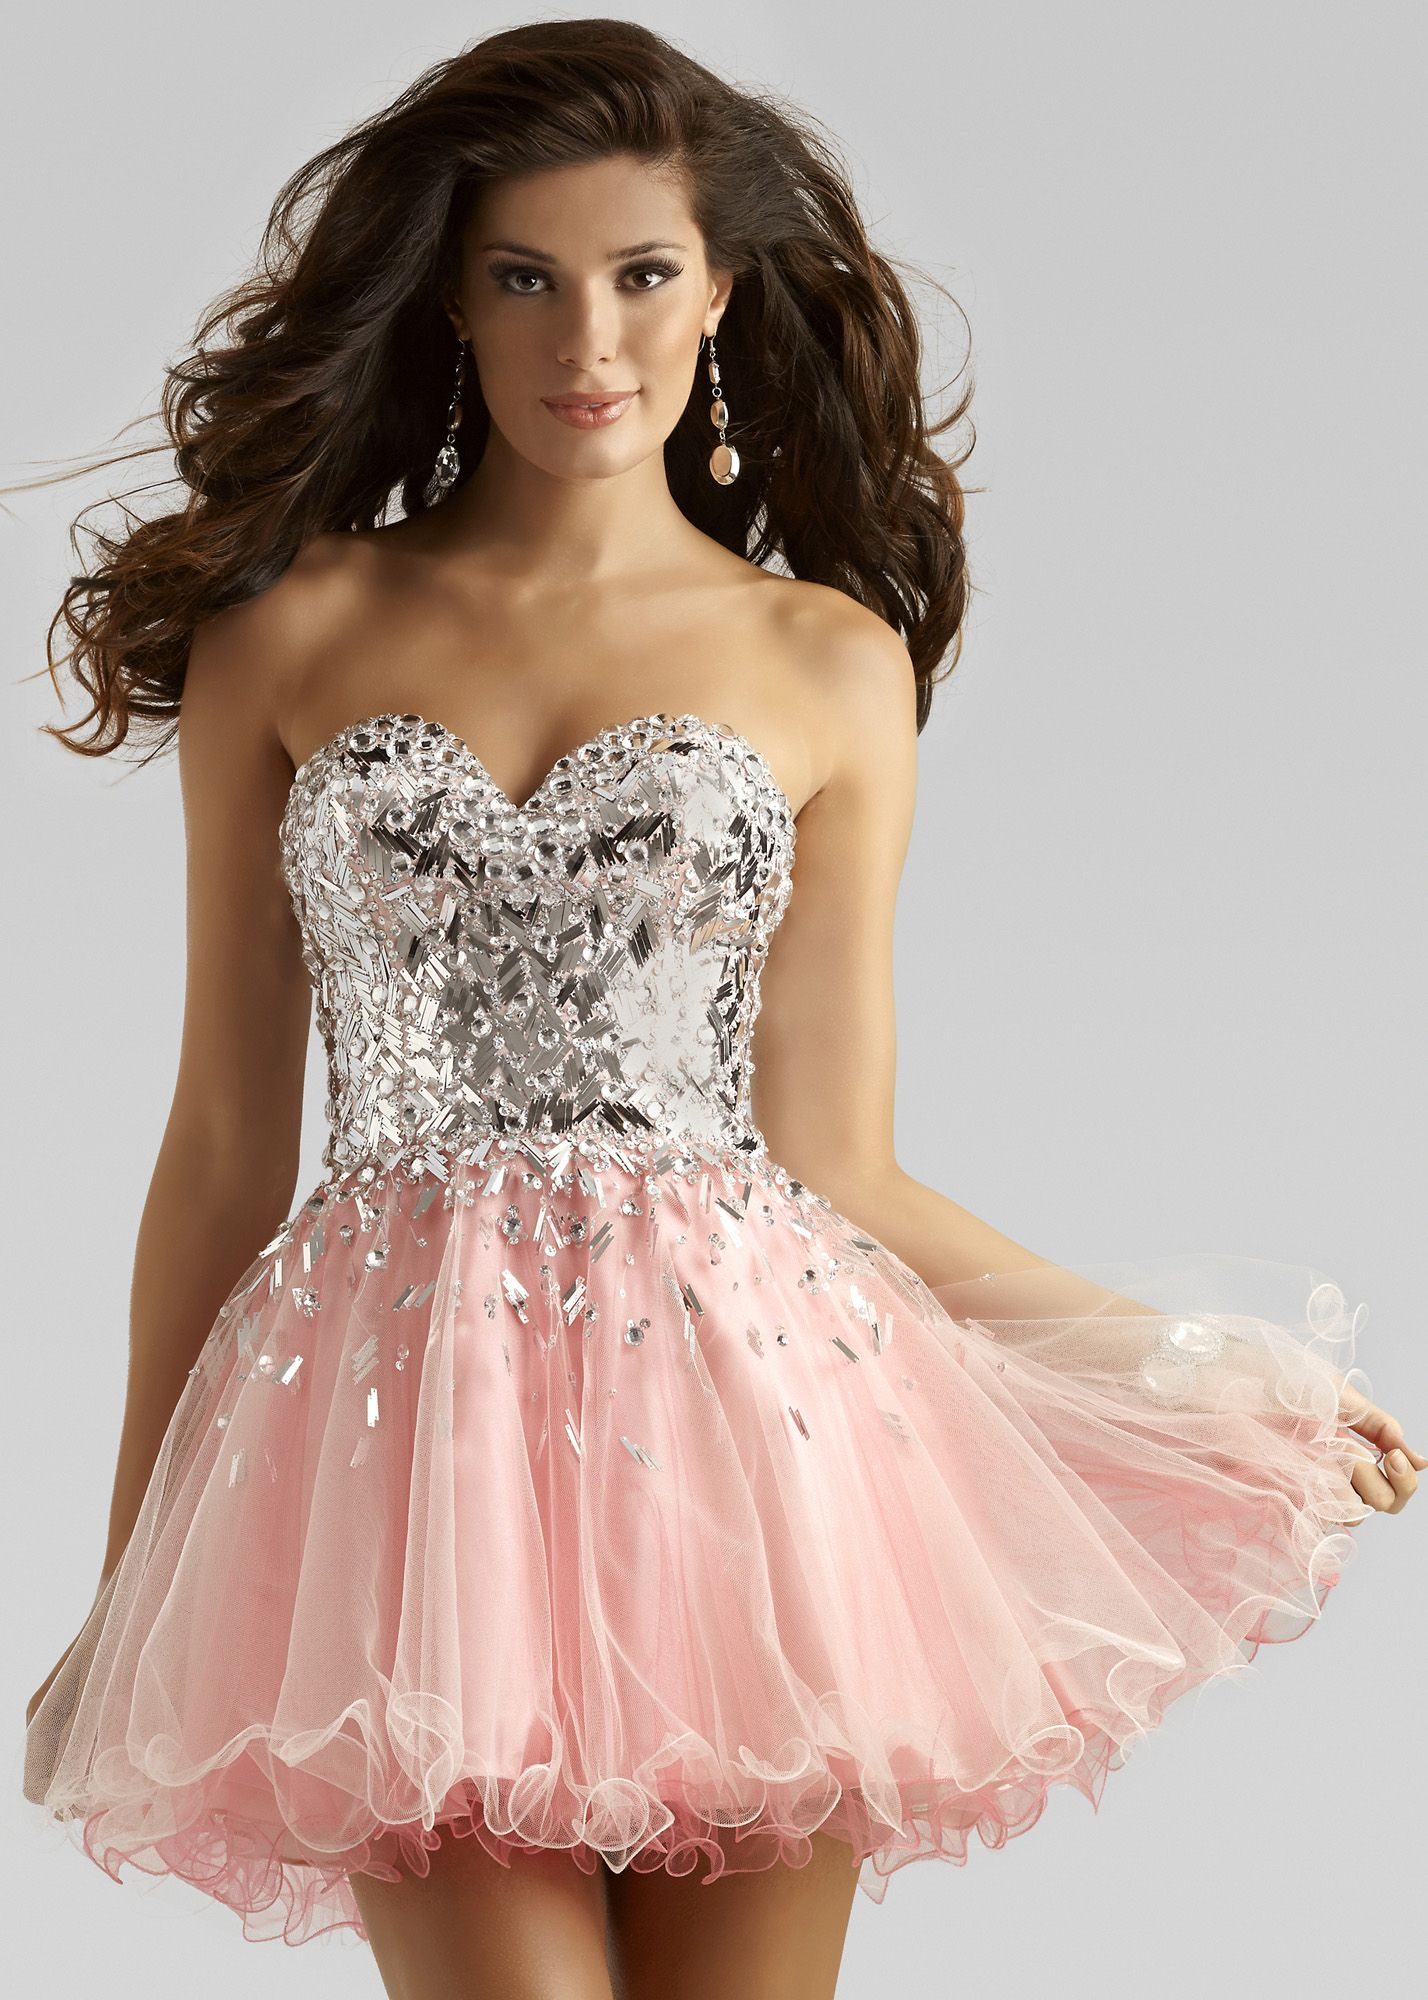 Clarisse 2391 Flirty Pink and Silver Homecoming Dress | Kleider ...